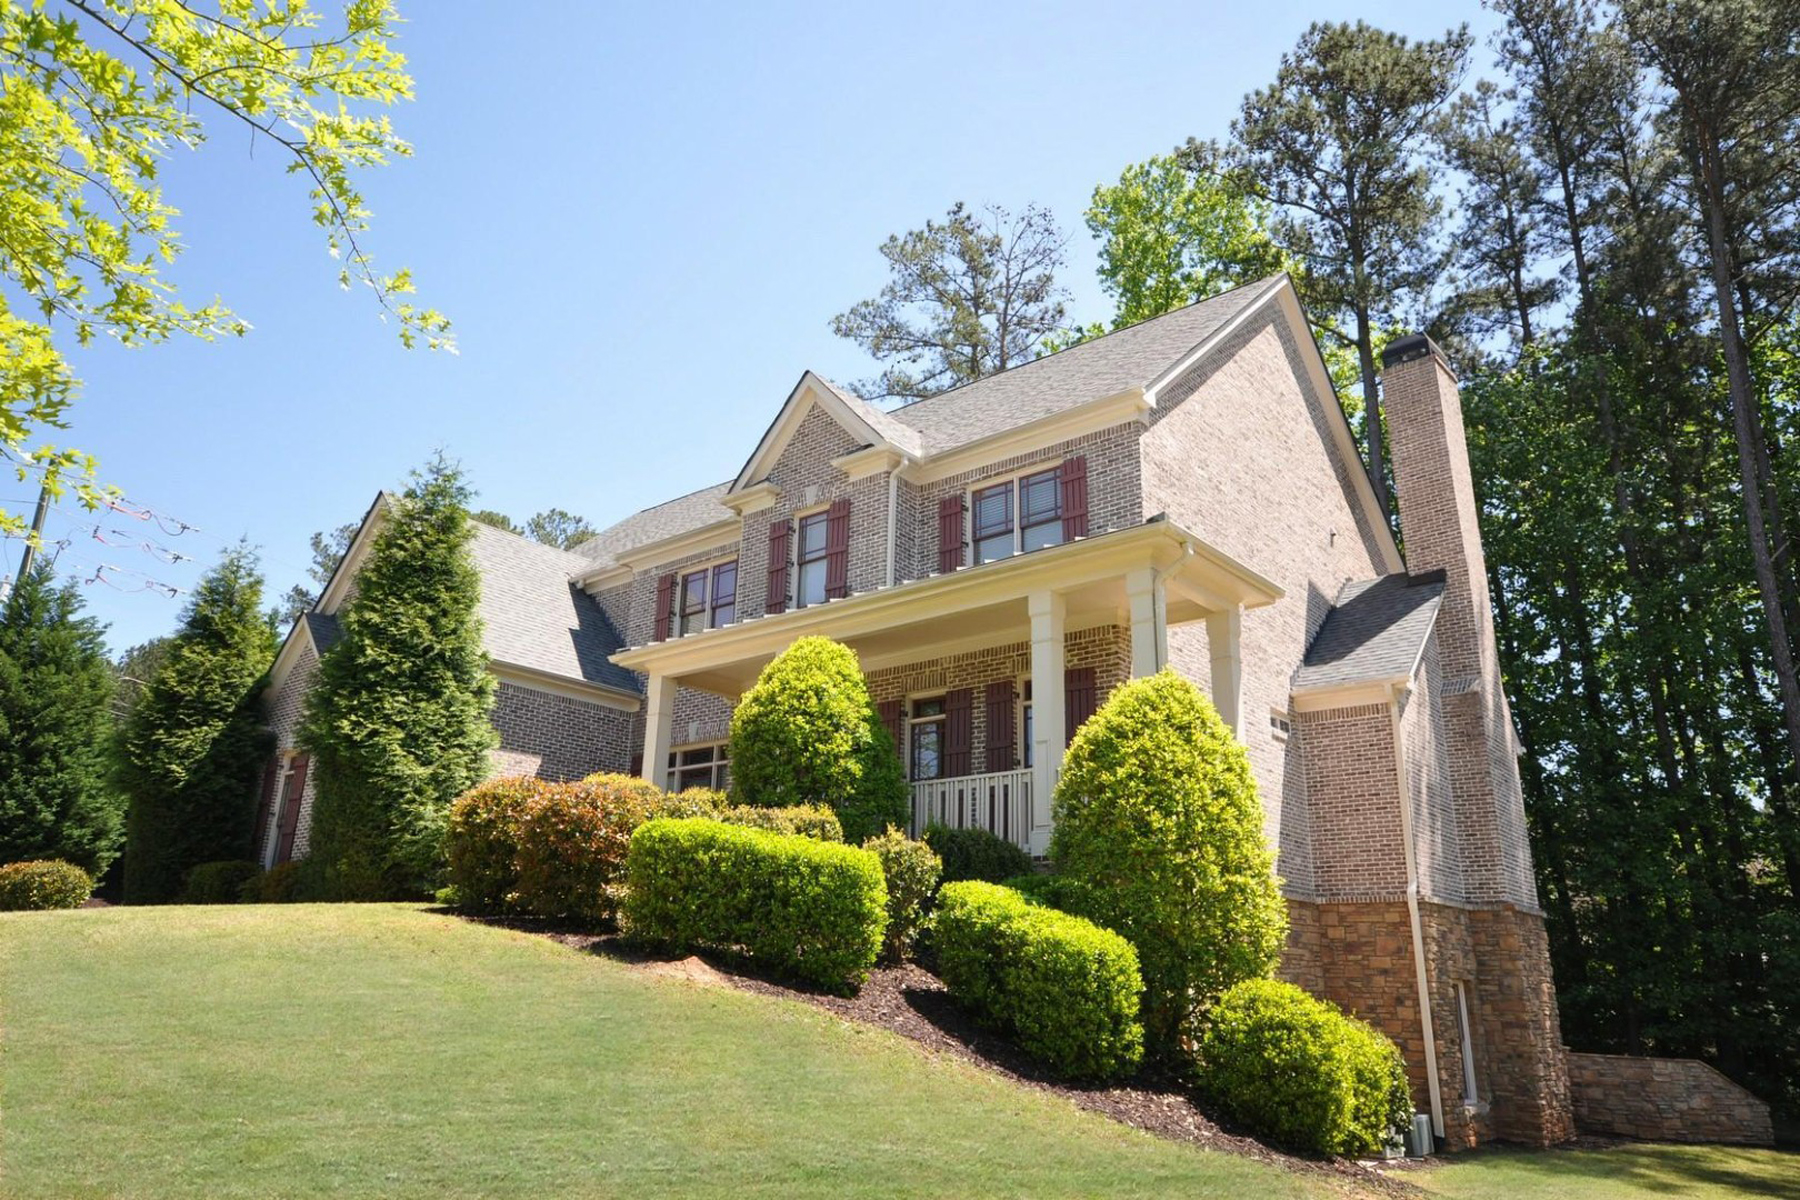 Maison unifamiliale pour l Vente à Former Model Home 674 Chestatee Creek Drive NW Acworth, Georgia 30101 États-Unis